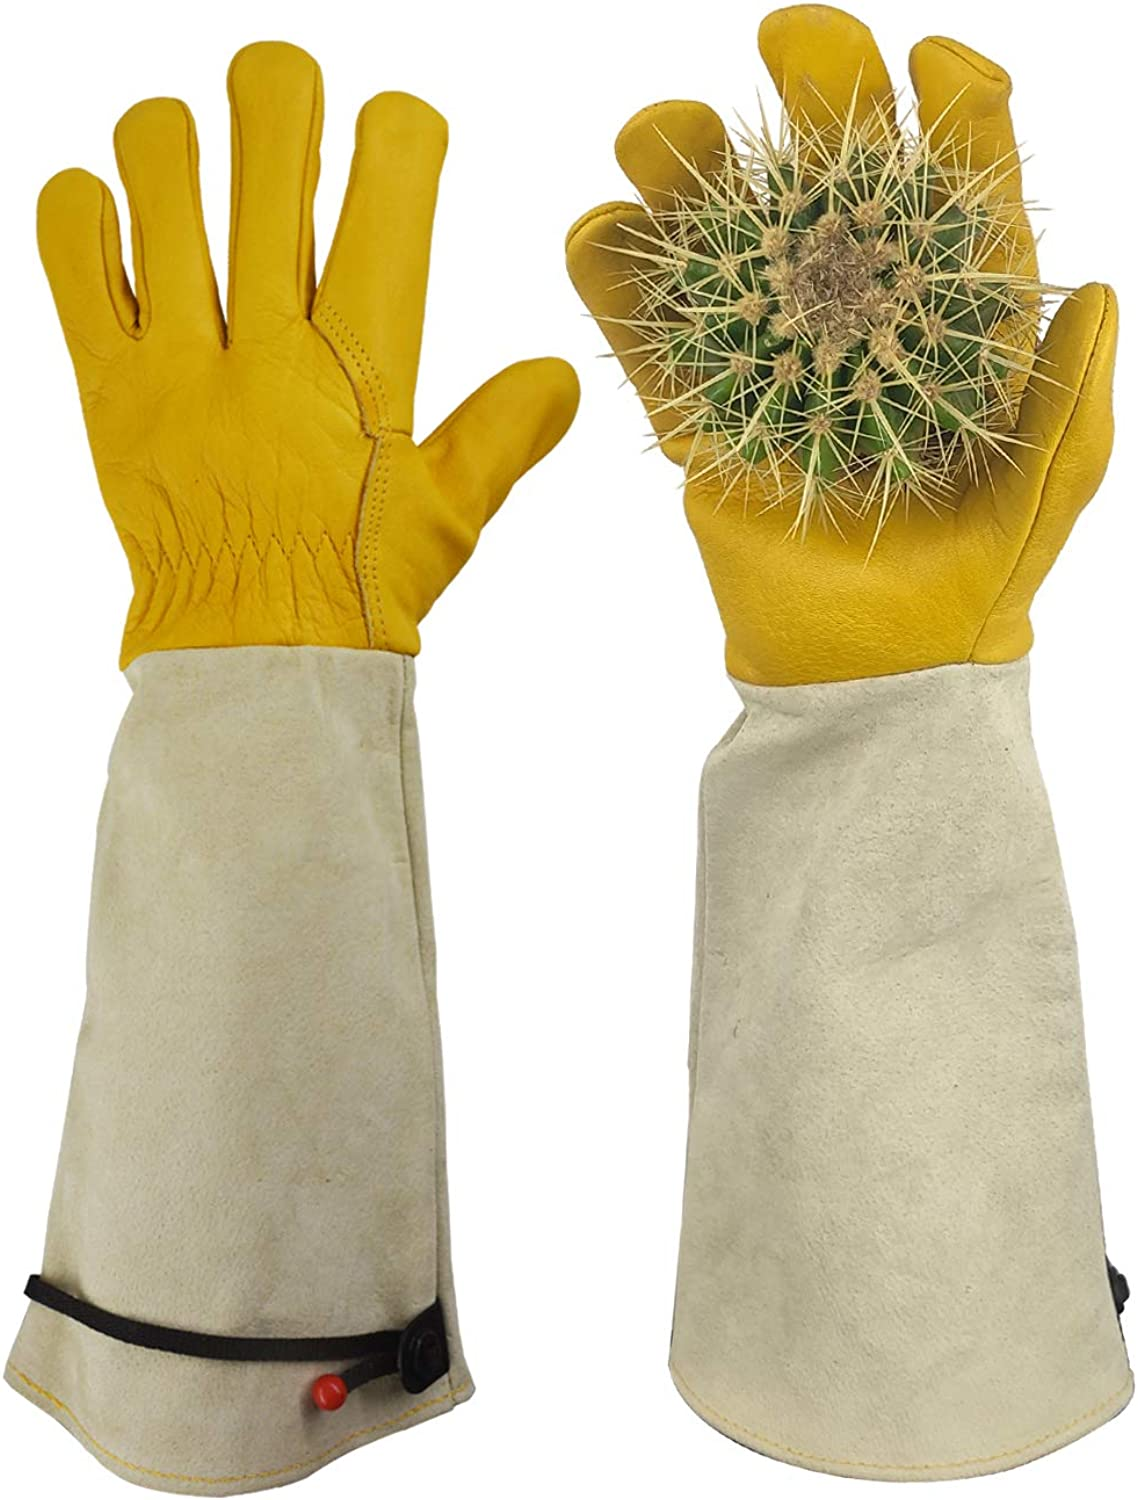 GLOSAV Gardening Gloves, Professional Puncture Proof Gloves for Rose Pruning & Cactus Trimming, Long Leather Garden Gloves Gifts for Women & Men- Full Grain Cowhide & Pigskin (Thorn Proof) (Small)